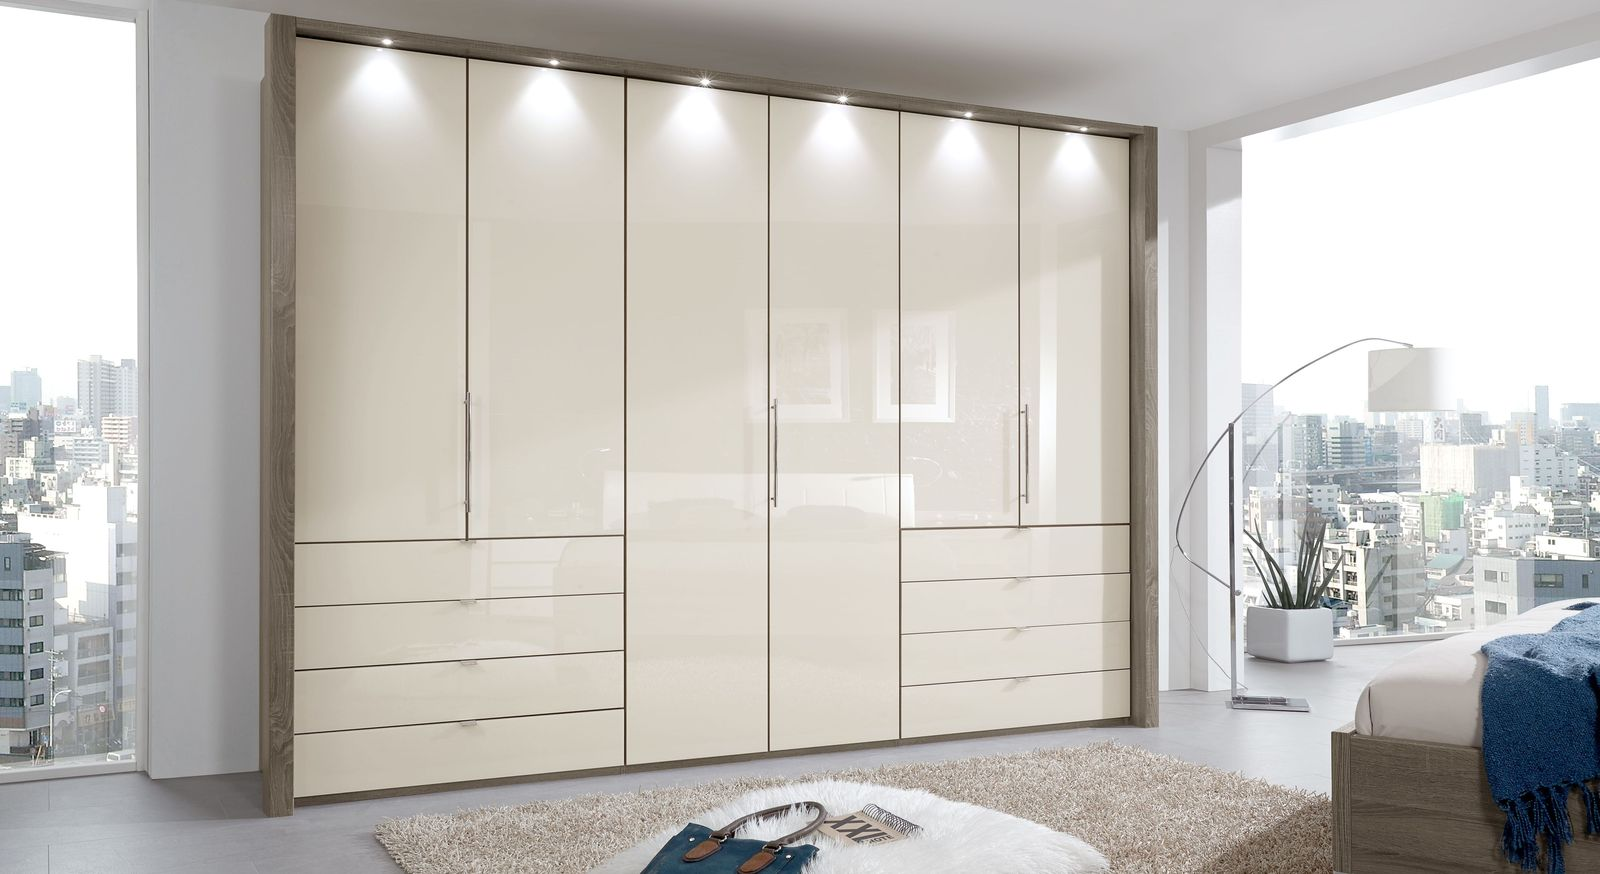 kleiderschrank in tr ffeleiche mit faltt ren schubladen. Black Bedroom Furniture Sets. Home Design Ideas